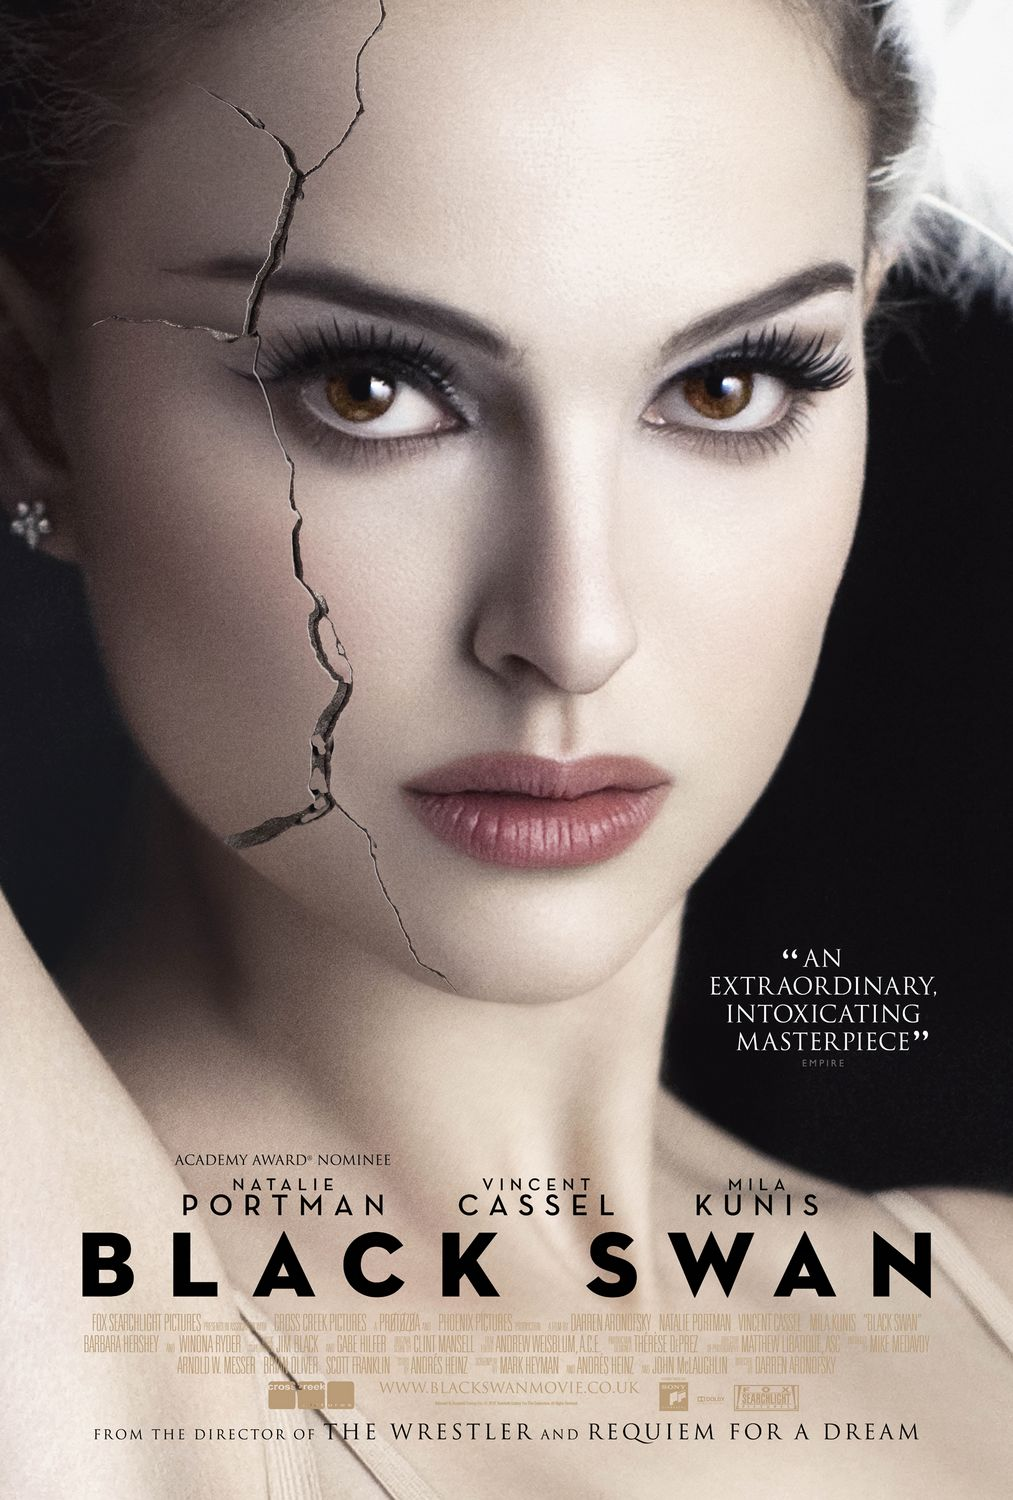 moviesandsongs365: Film review - Black Swan (2010)